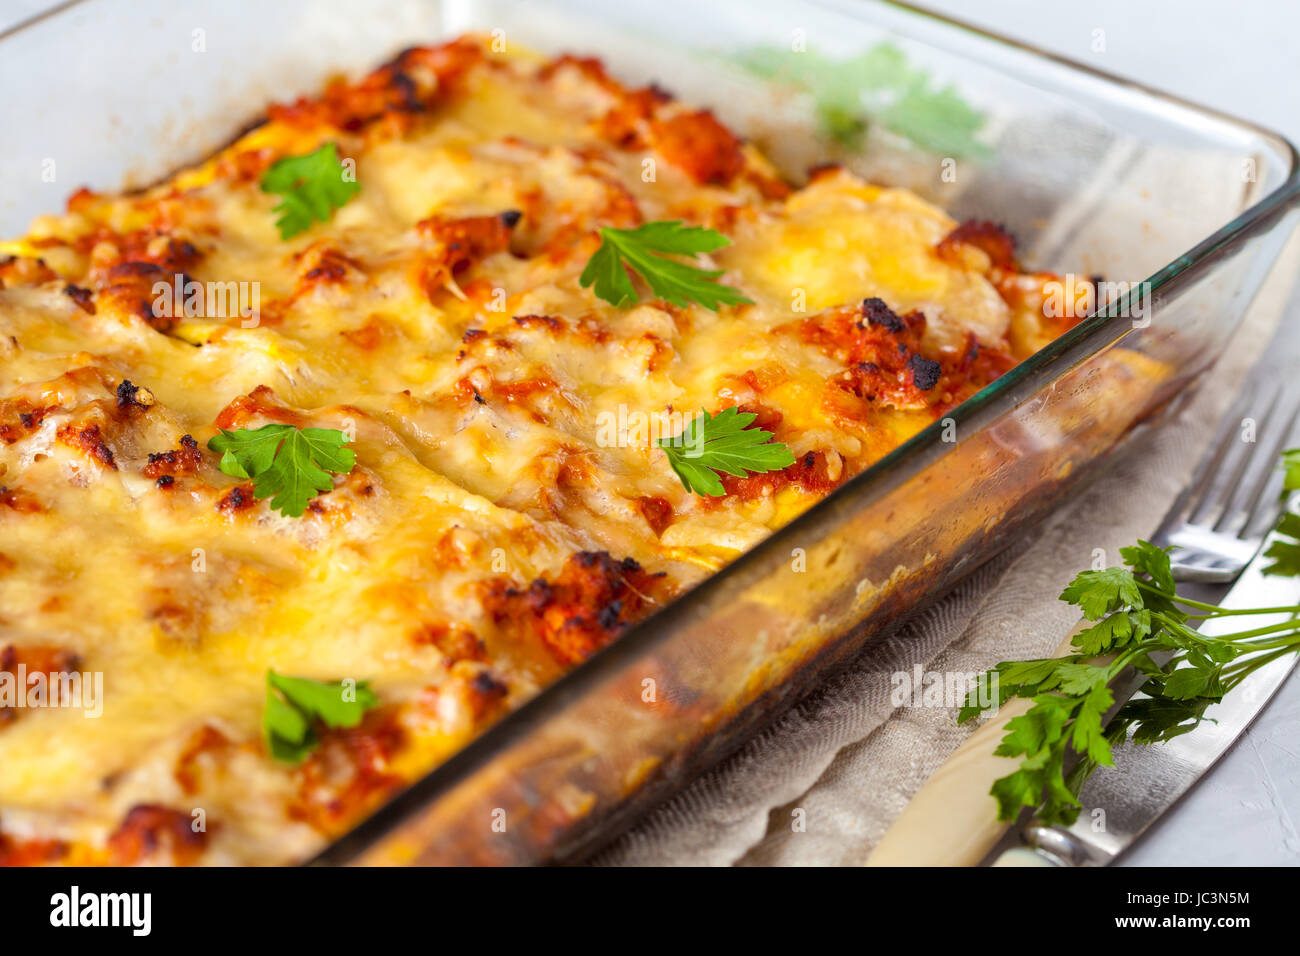 Traditional Italian Meat Lasagna Baked In Glass Form Stock